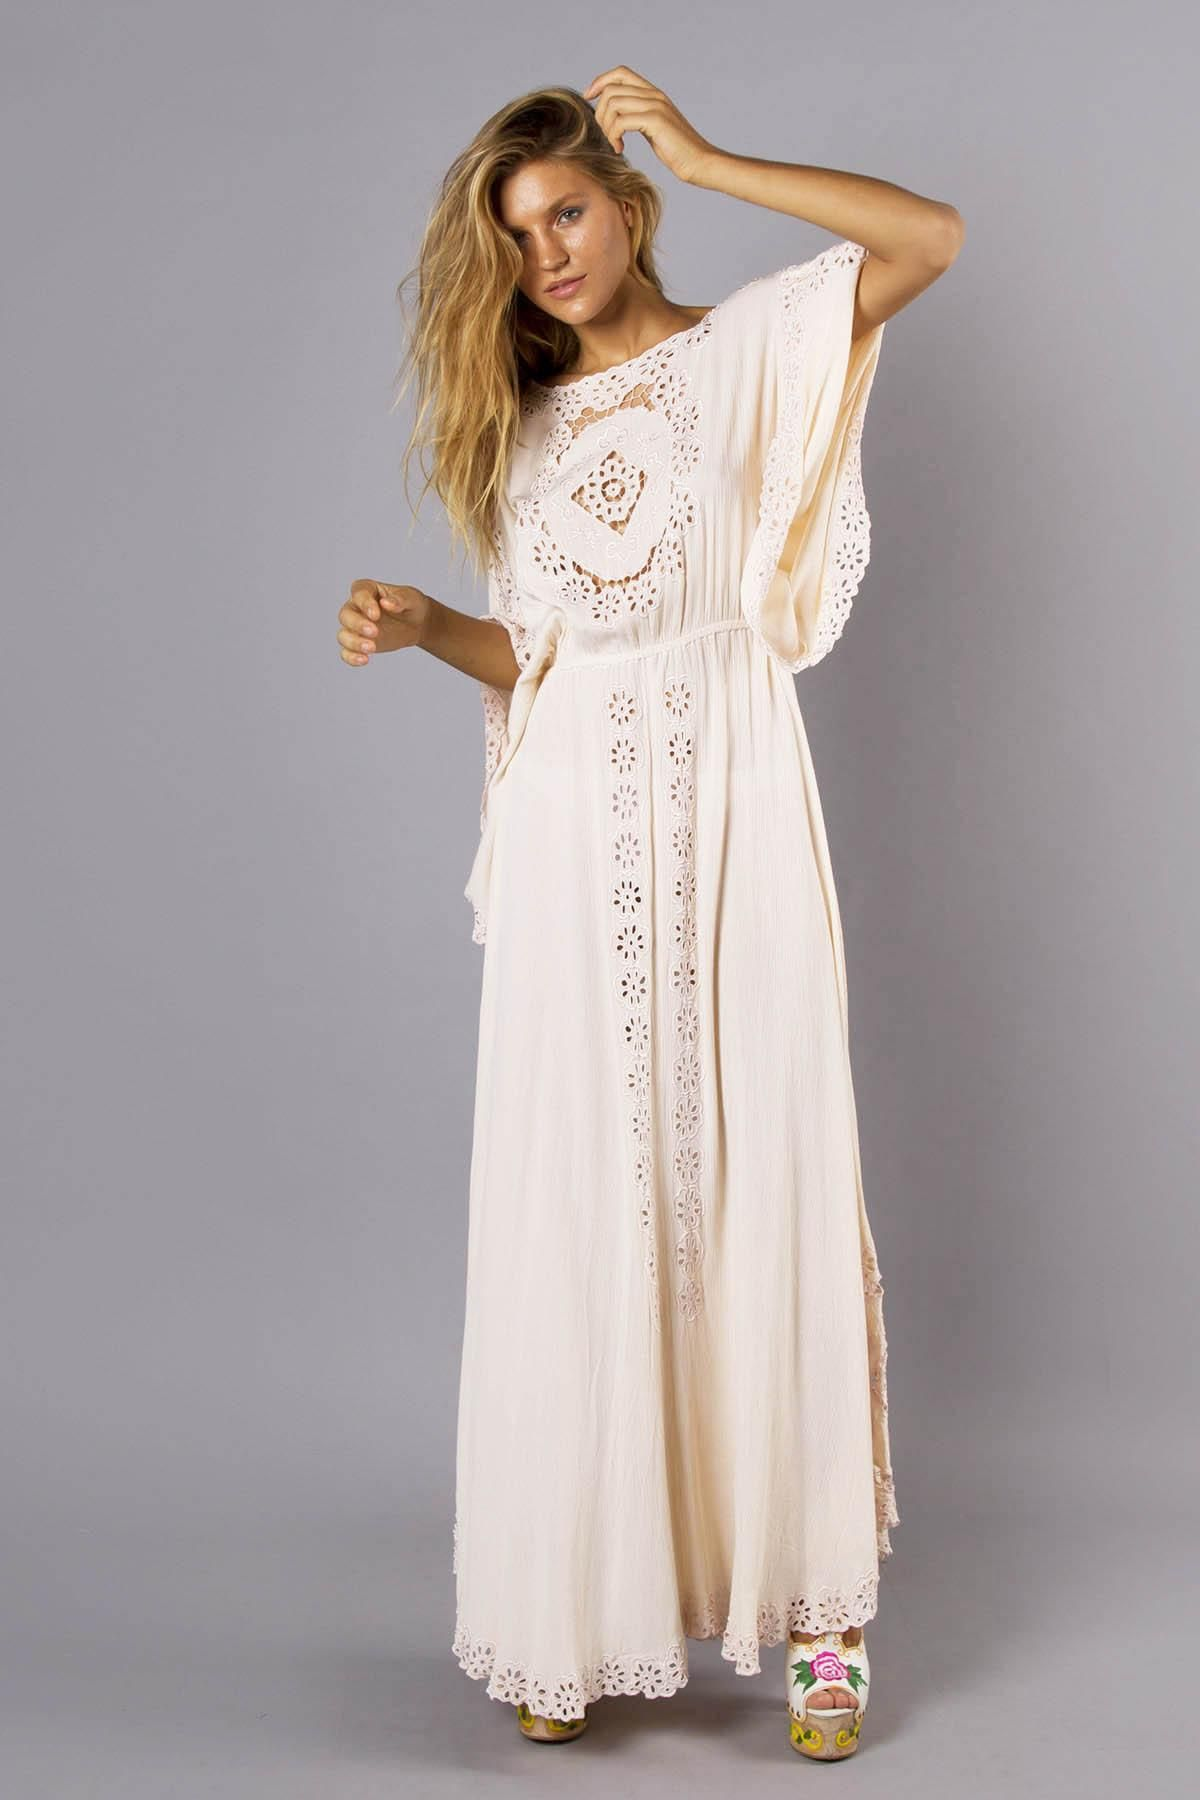 I believe in unicorns maxi dress womens embroidered maxi dress i believe in unicorns maxi dress womens embroidered maxi dress blush fillyboo boho inspired maternity clothes online maternity dresses maternity ombrellifo Gallery